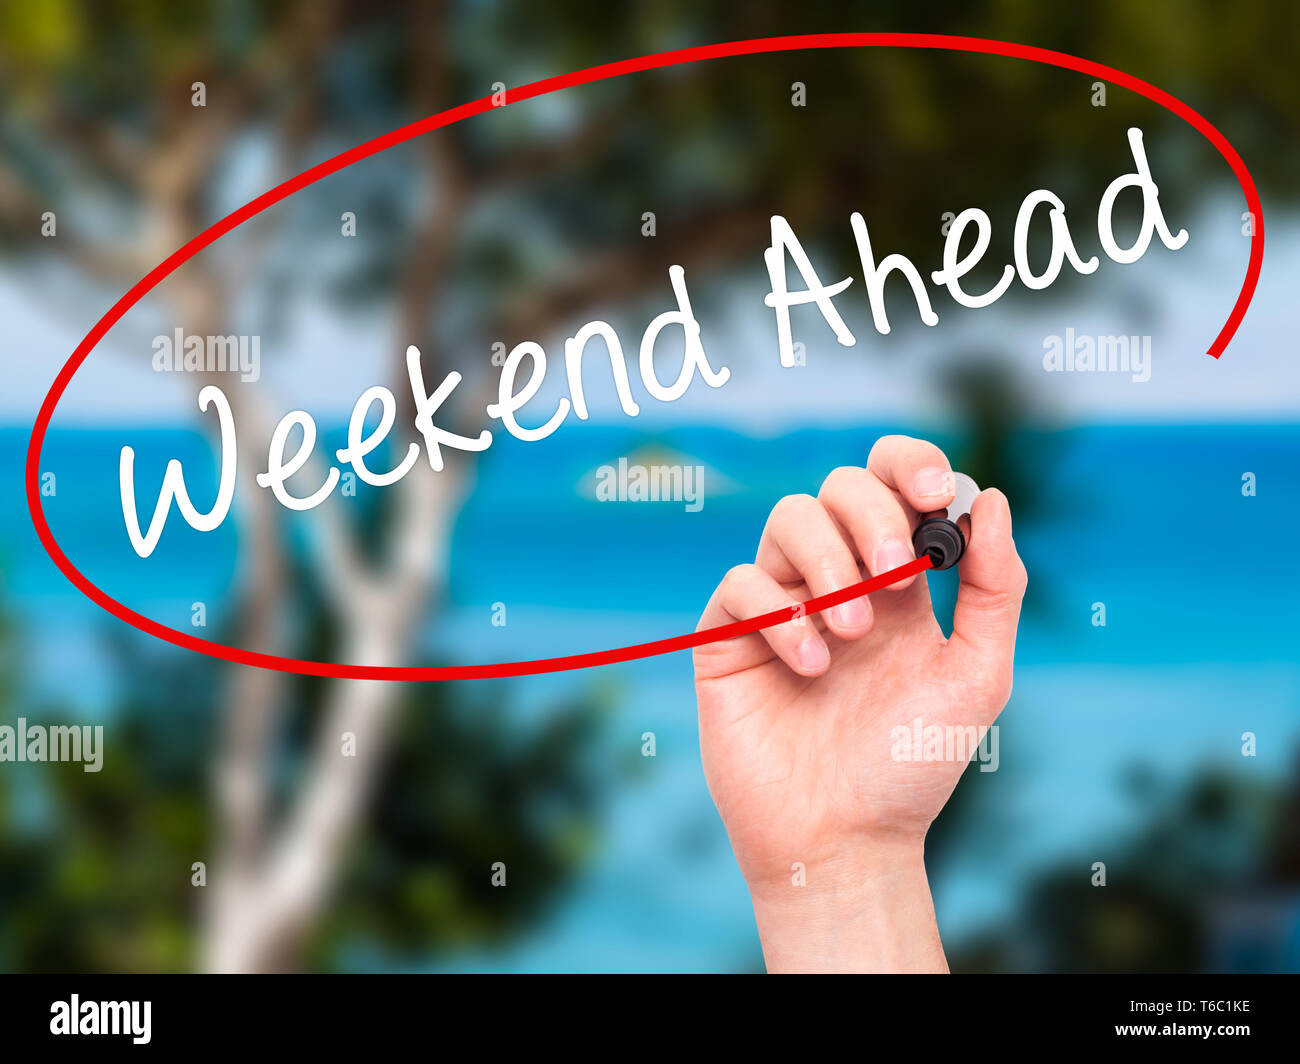 Man Hand writing Weekend Ahead with black marker on visual screen - Stock Image